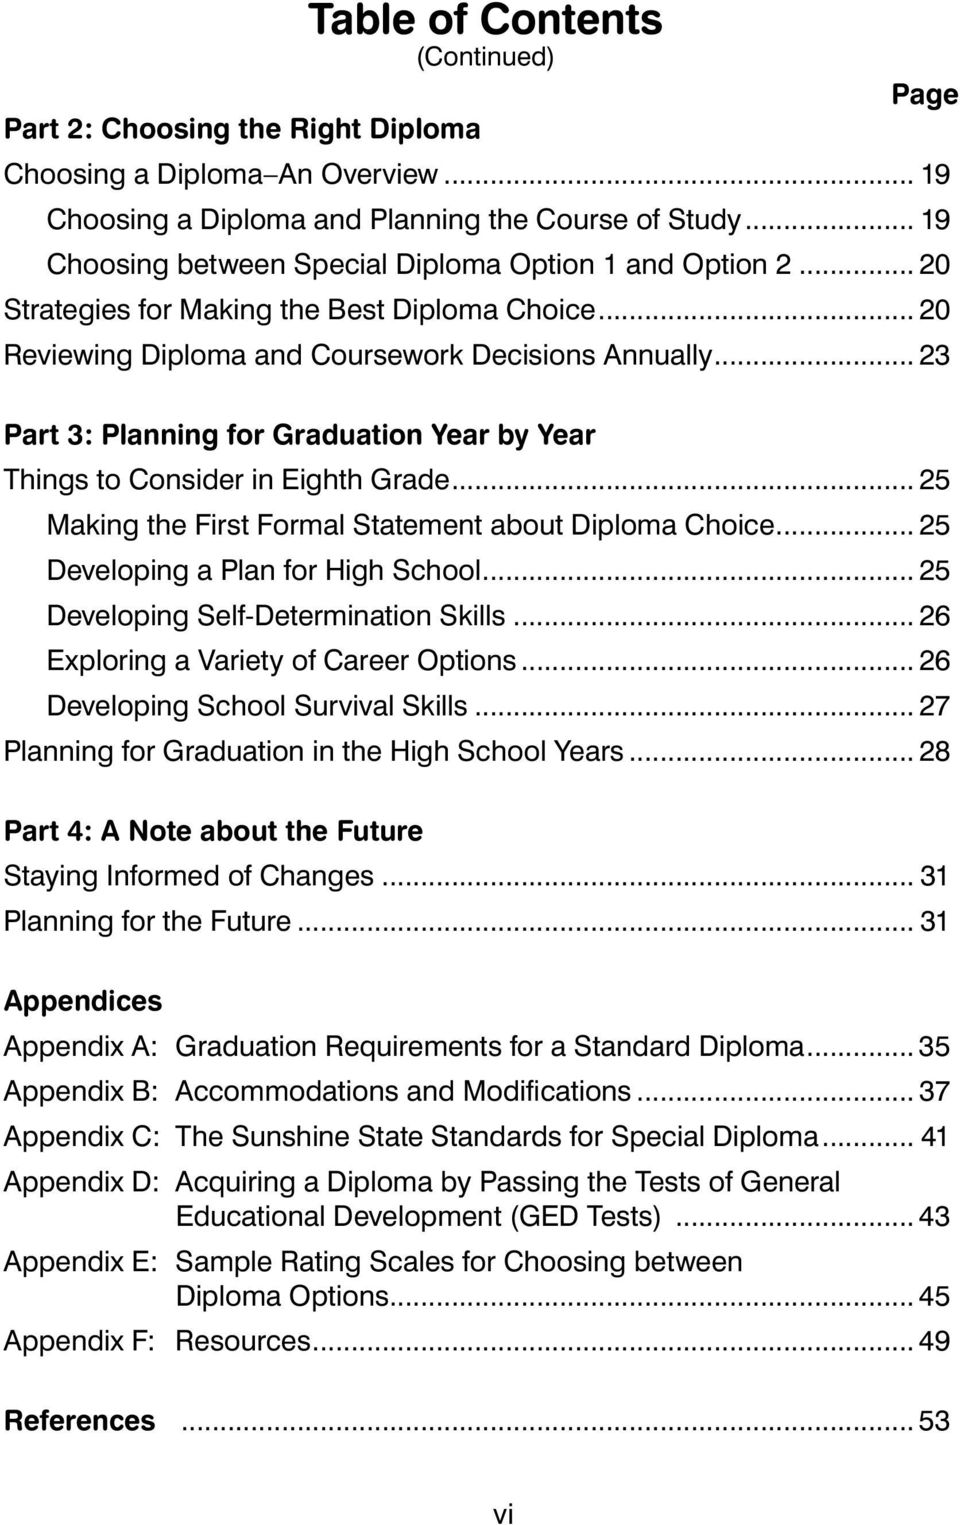 .. 23 Part 3: Panning for Graduation Year by Year Things to Consider in Eighth Grade... 25 Making the First Forma Statement about Dipoma Choice... 25 Deveoping a Pan for High Schoo.